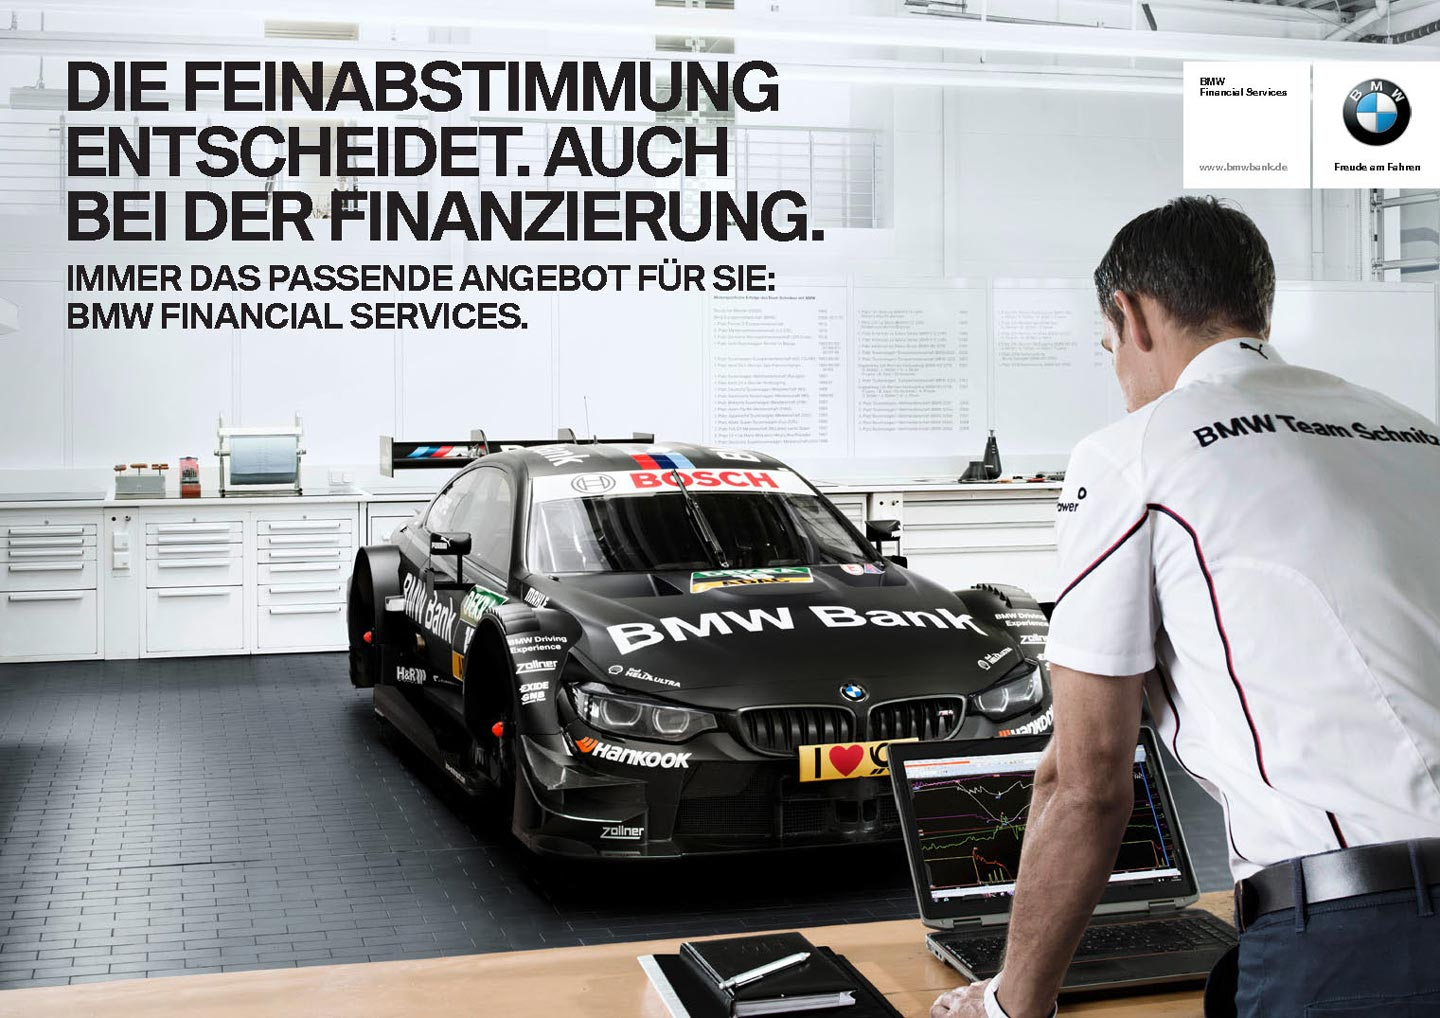 Maximilian_Stengl_BMW_Financial_Services_1440_04